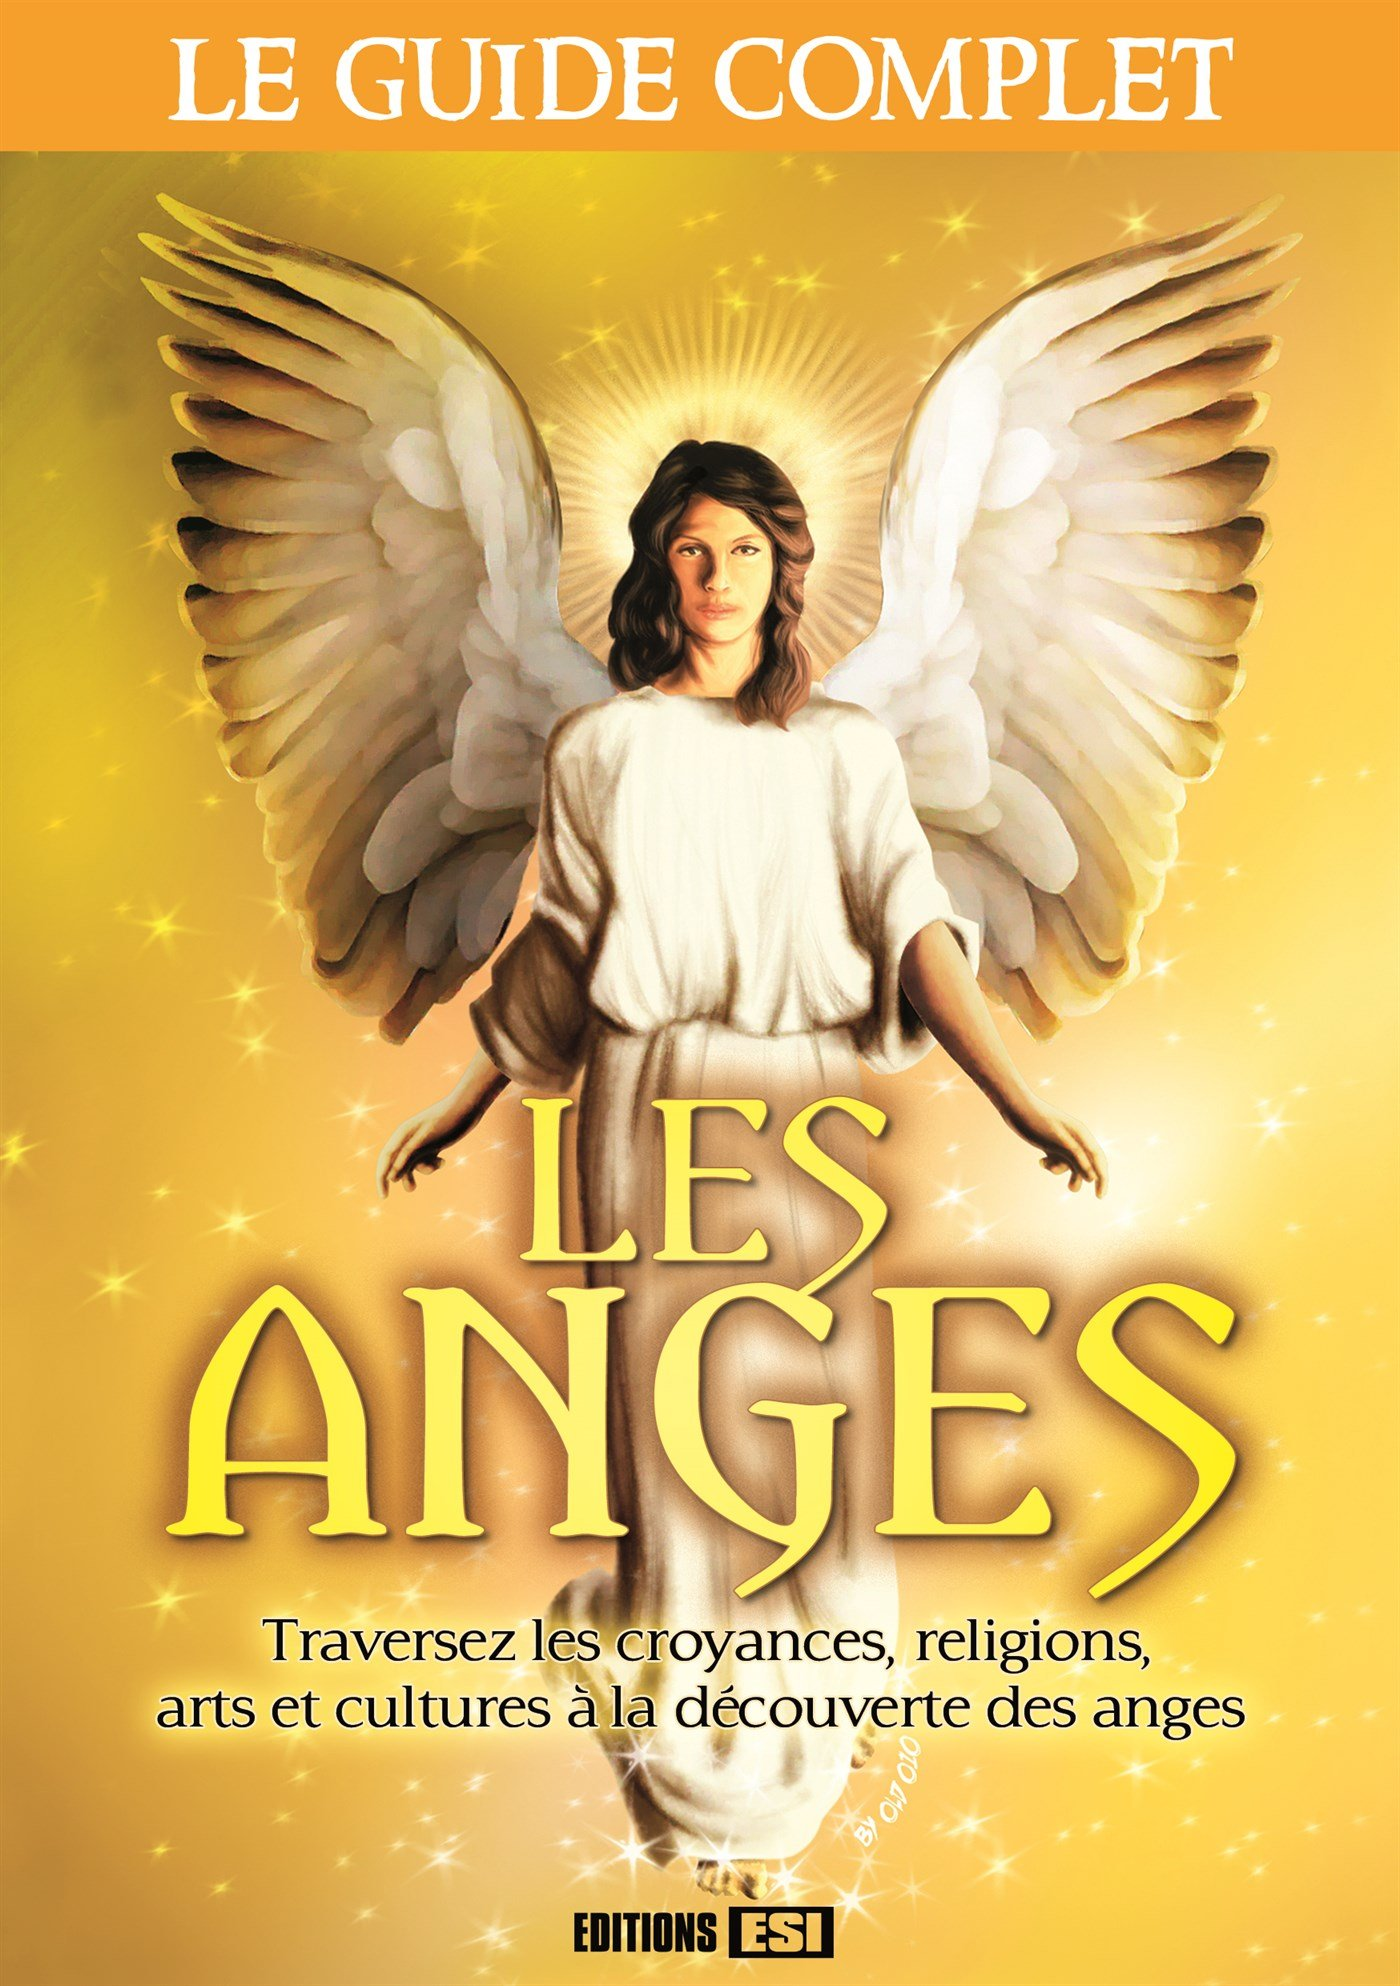 Les anges : Le guide complet Broché – 8 octobre 2015 Las Casas Editions ESI 2822603960 Anges/archanges